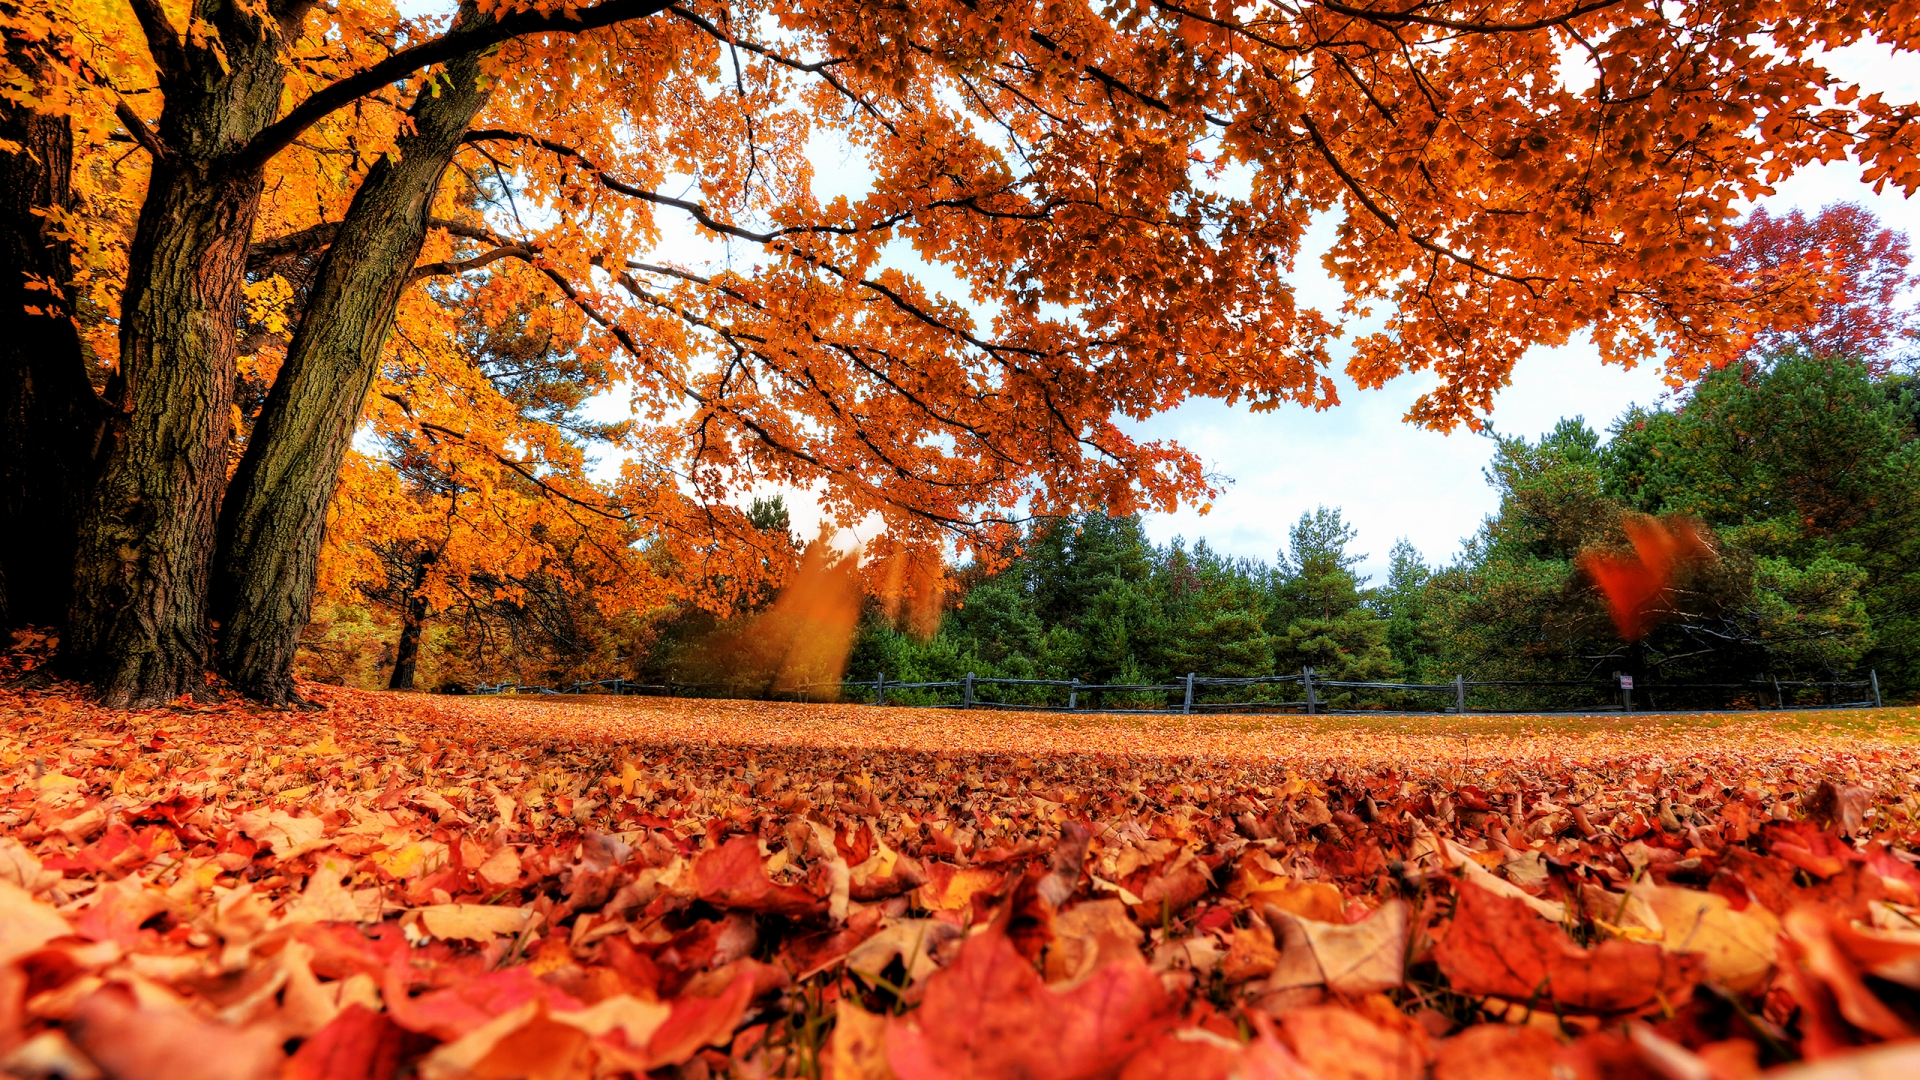 Autumn Leaf Fall Wallpaper All The Leaves Are Brown Checklist For Gardening